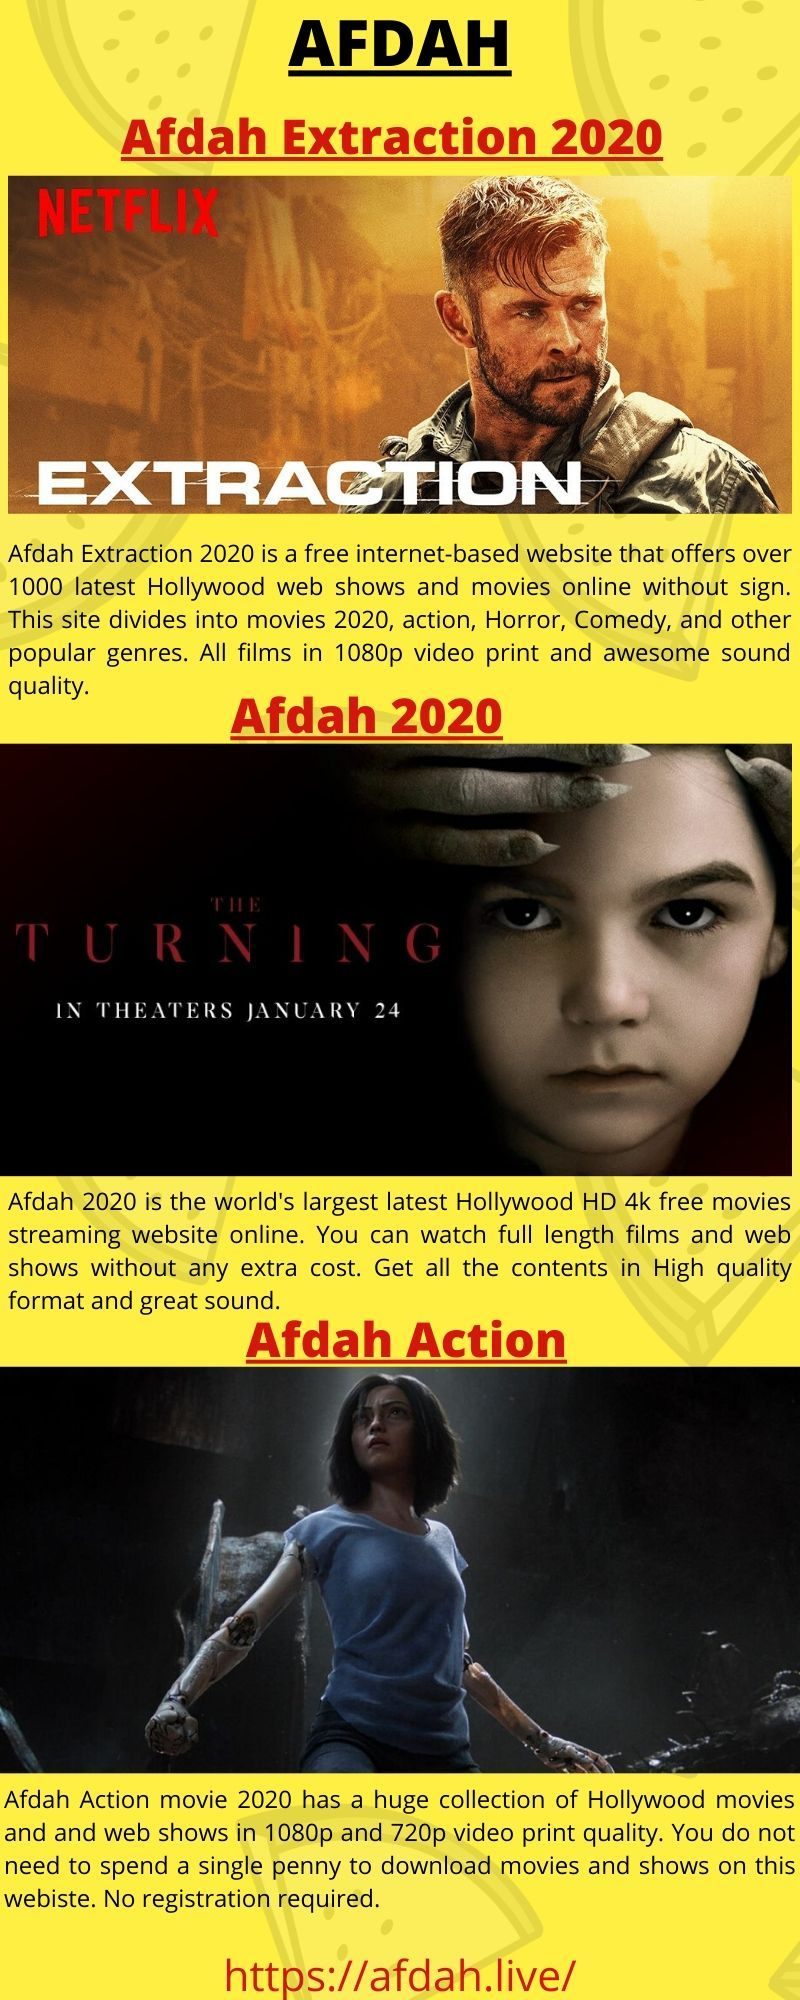 Afdah Extraction 2020 has a huge collection of Hollywood